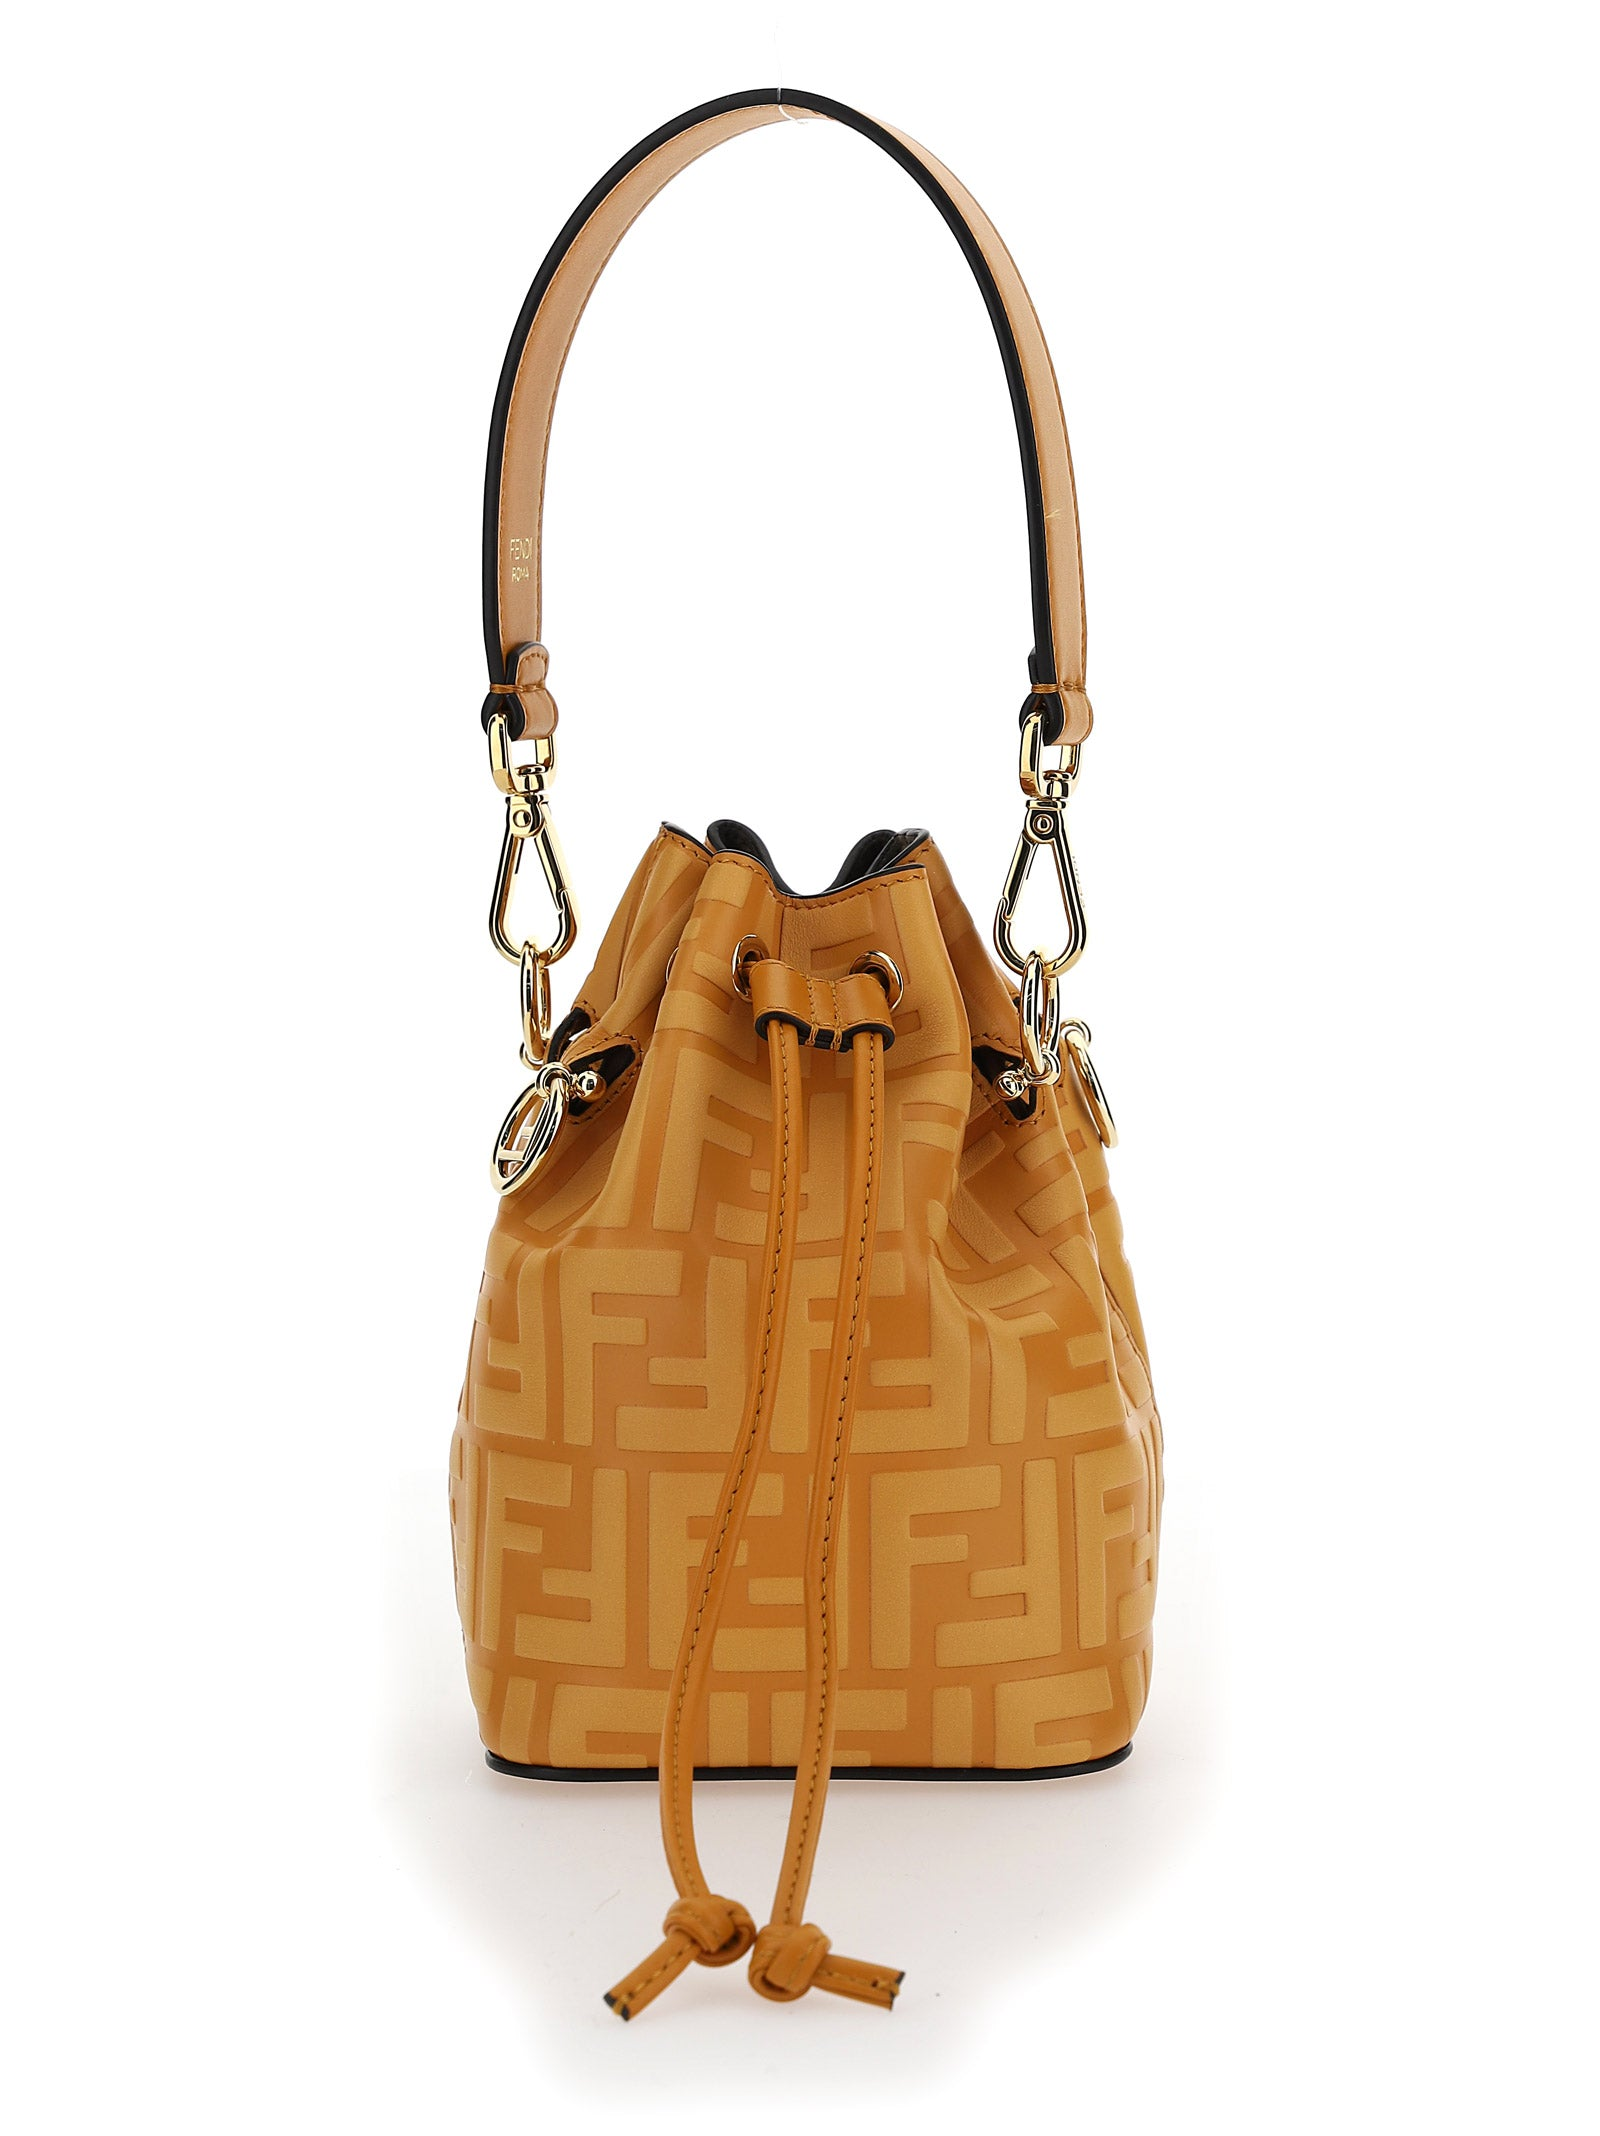 FENDI FENDI MON TRESOR MINI BUCKET BAG